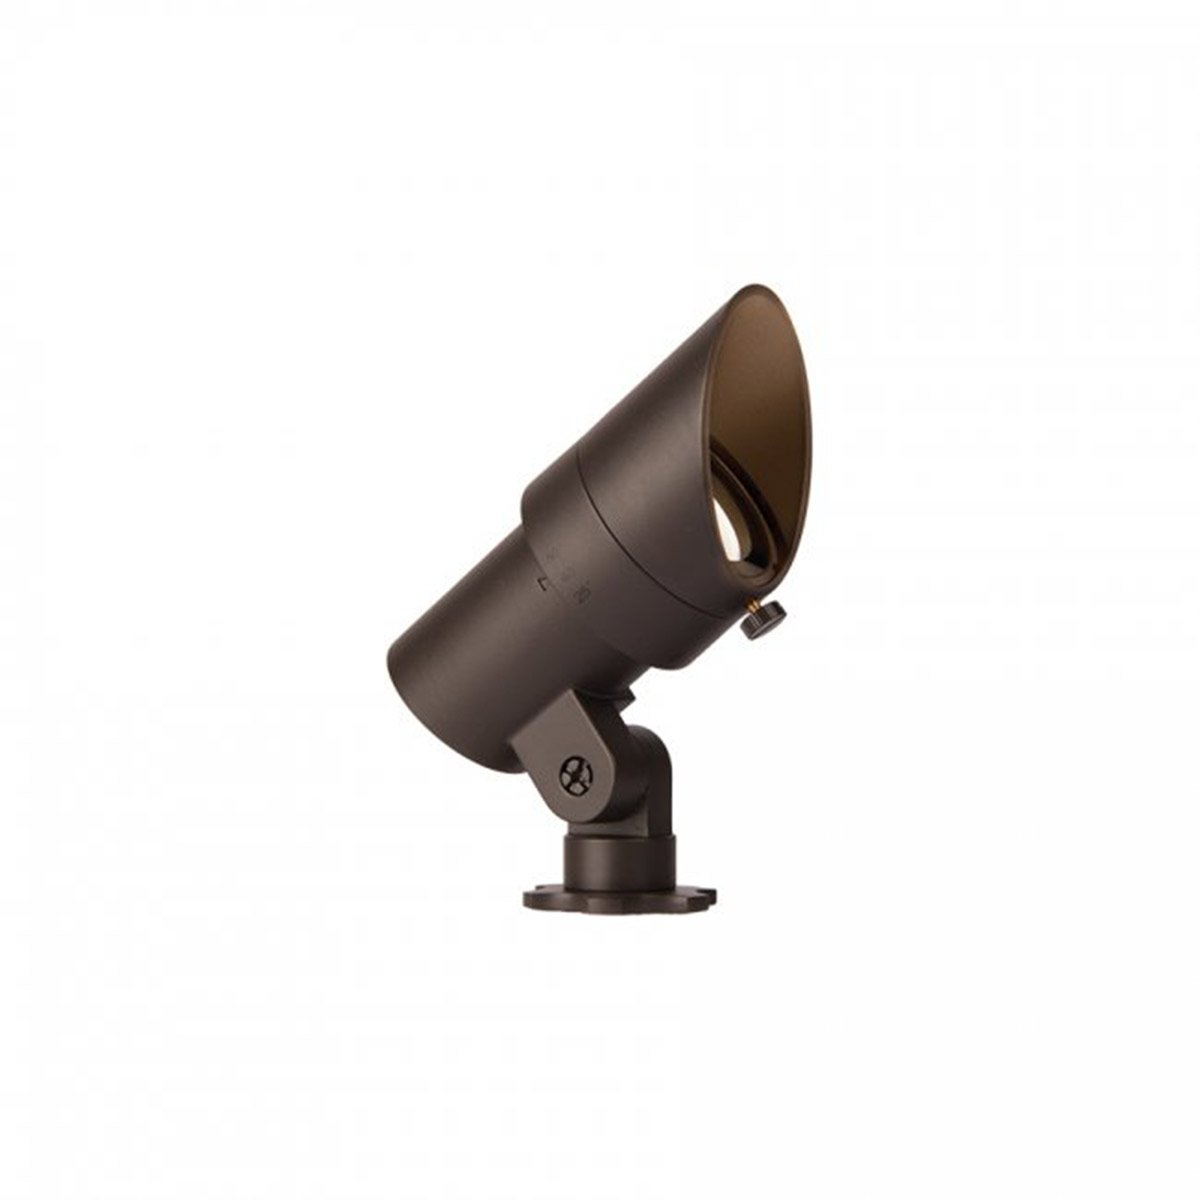 WAC Lighting Wac Landscape 5111-27BZ LED 12V Mini Accent Finish 2700K, Bronze by WAC Lighting